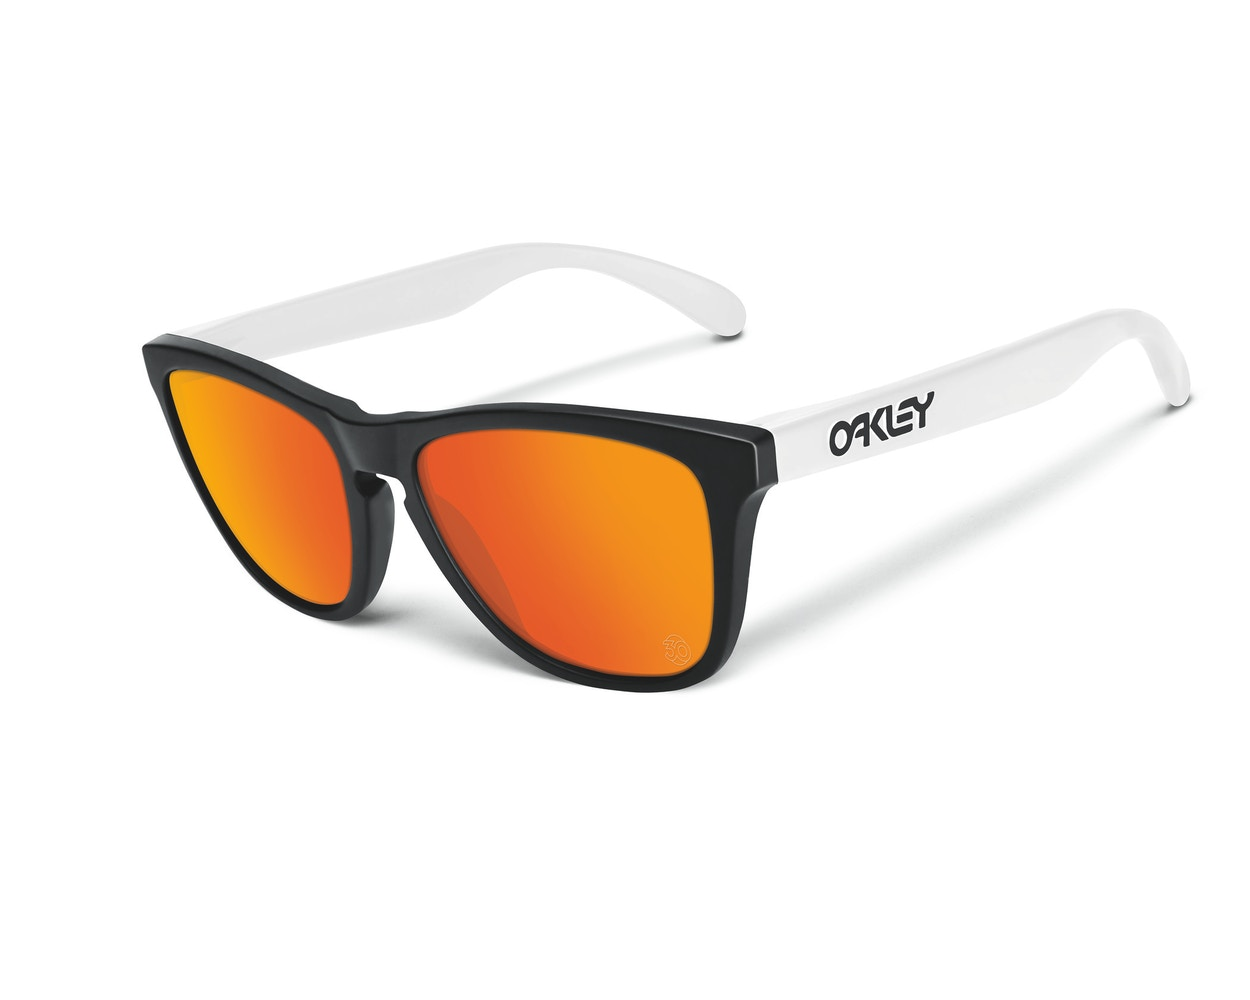 Oakley-tapping into your inner 80s